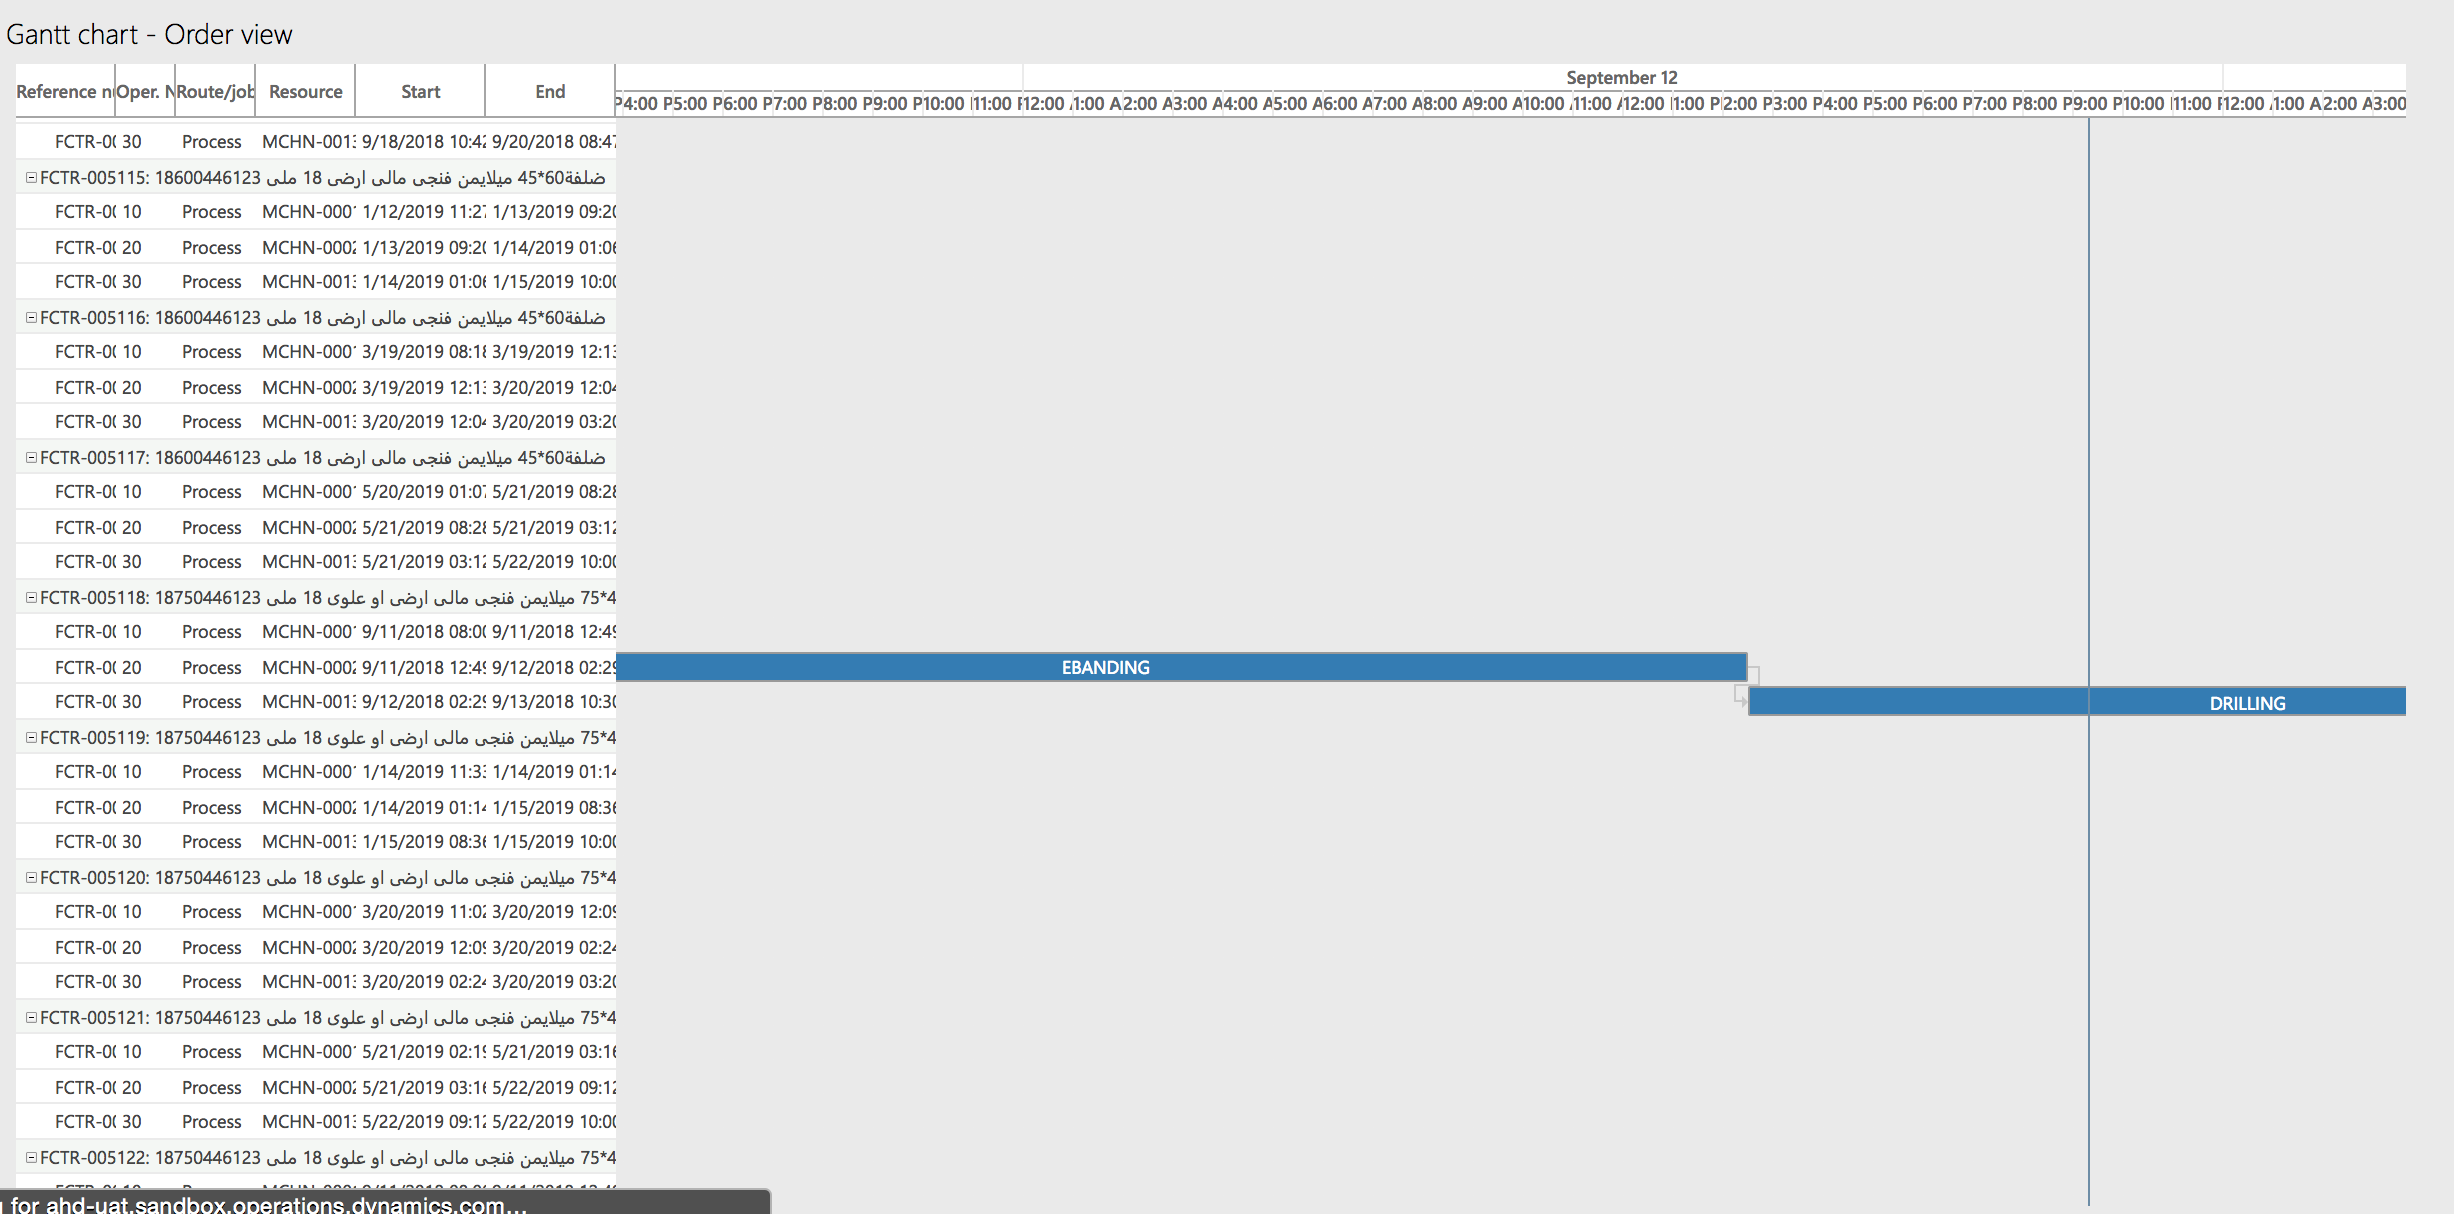 Master Production Planning Gantt Chart Order Grouping Visibility